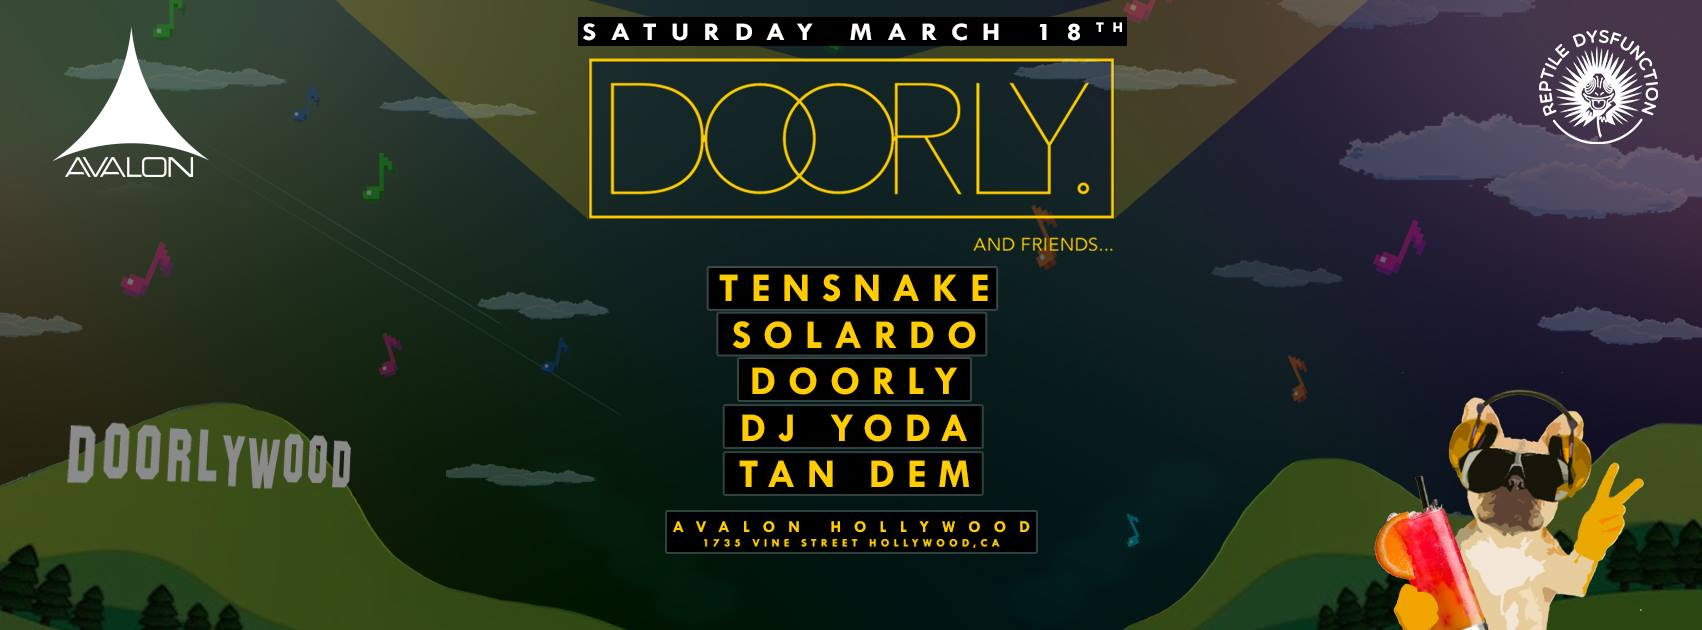 News Update: Avalon Nightclub in Hollywood!  Text 323.296.9528 for Guestlist and bottle service!  Hamburg native, Tensnake, has been smashing the house game since 2005. Over the years, he has earned himself a name as a game-changing dance pioneer. Tensnake has gone on to launch his latest artist label, True Romance, where he has released tracks from forward-thinking artists such as Andre Hommen, Prison Grande, Charlie Sputnik, Sunrise Highway, Magic Touch, Larse, and more.  Solardo is a duo based out of the UK who has their own unique style of house and techno. The duo has been featured on the prestigious BBC Radio 1 for an all-encompassing mini-mix. Their productions have their own unique warm, and high energy sound which have received great support from the likes of Pete Tong, Annie Mac, Jamie Jones, Skream, and more.  Doorly is a master of the underground; having released on Relief Records, Hot Creations, and the ever-notorious Dirtybird Records, the producer has proven his expertise in production and the ability to write a unique hit.  LINEUP Tensnake Solardo DOORLY DJ Yoda Tan Dem